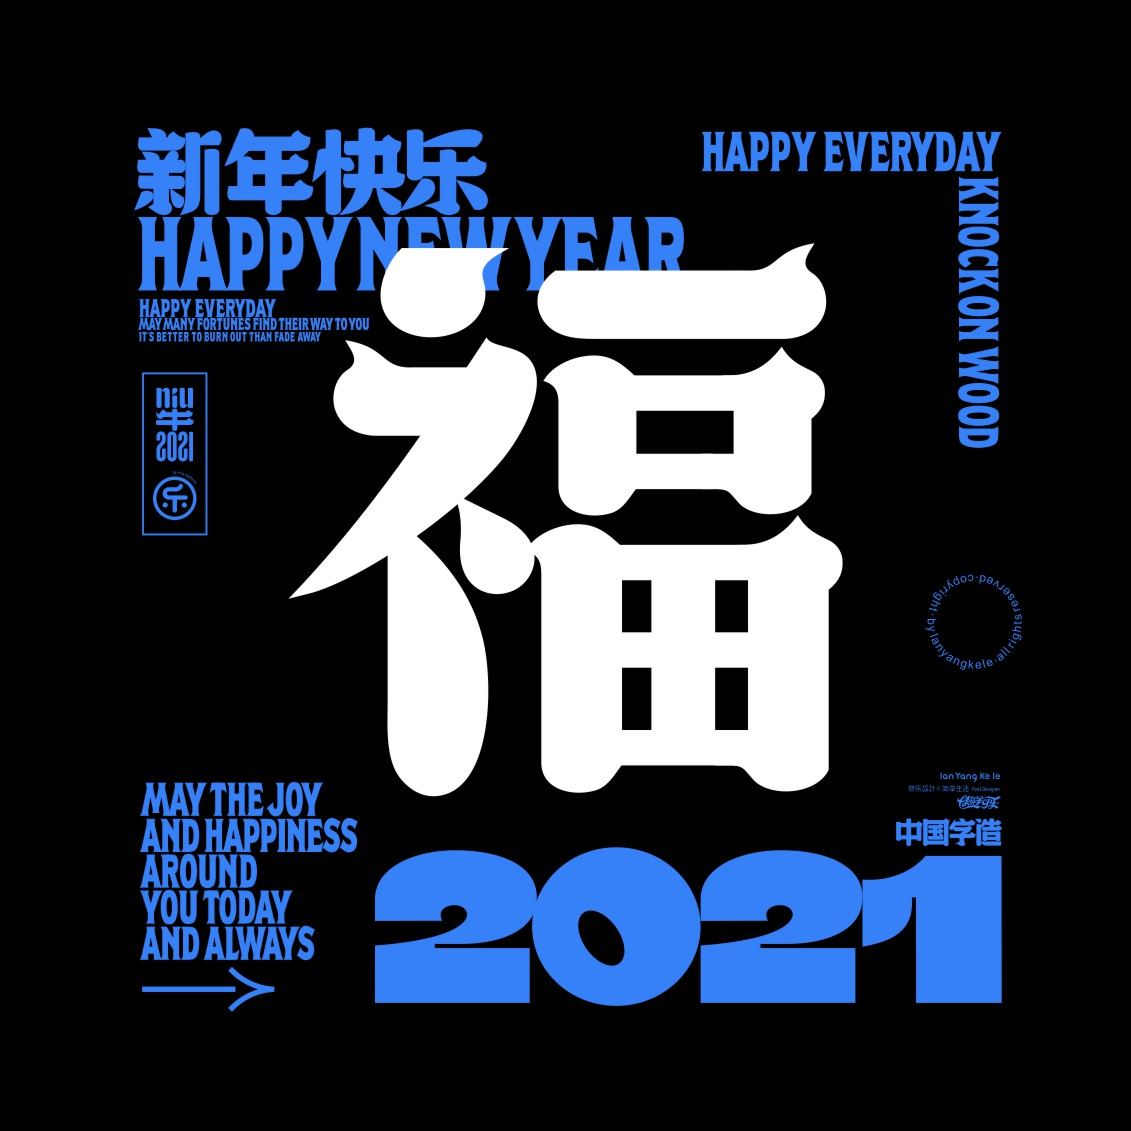 A group of New Year's greetings In 2021